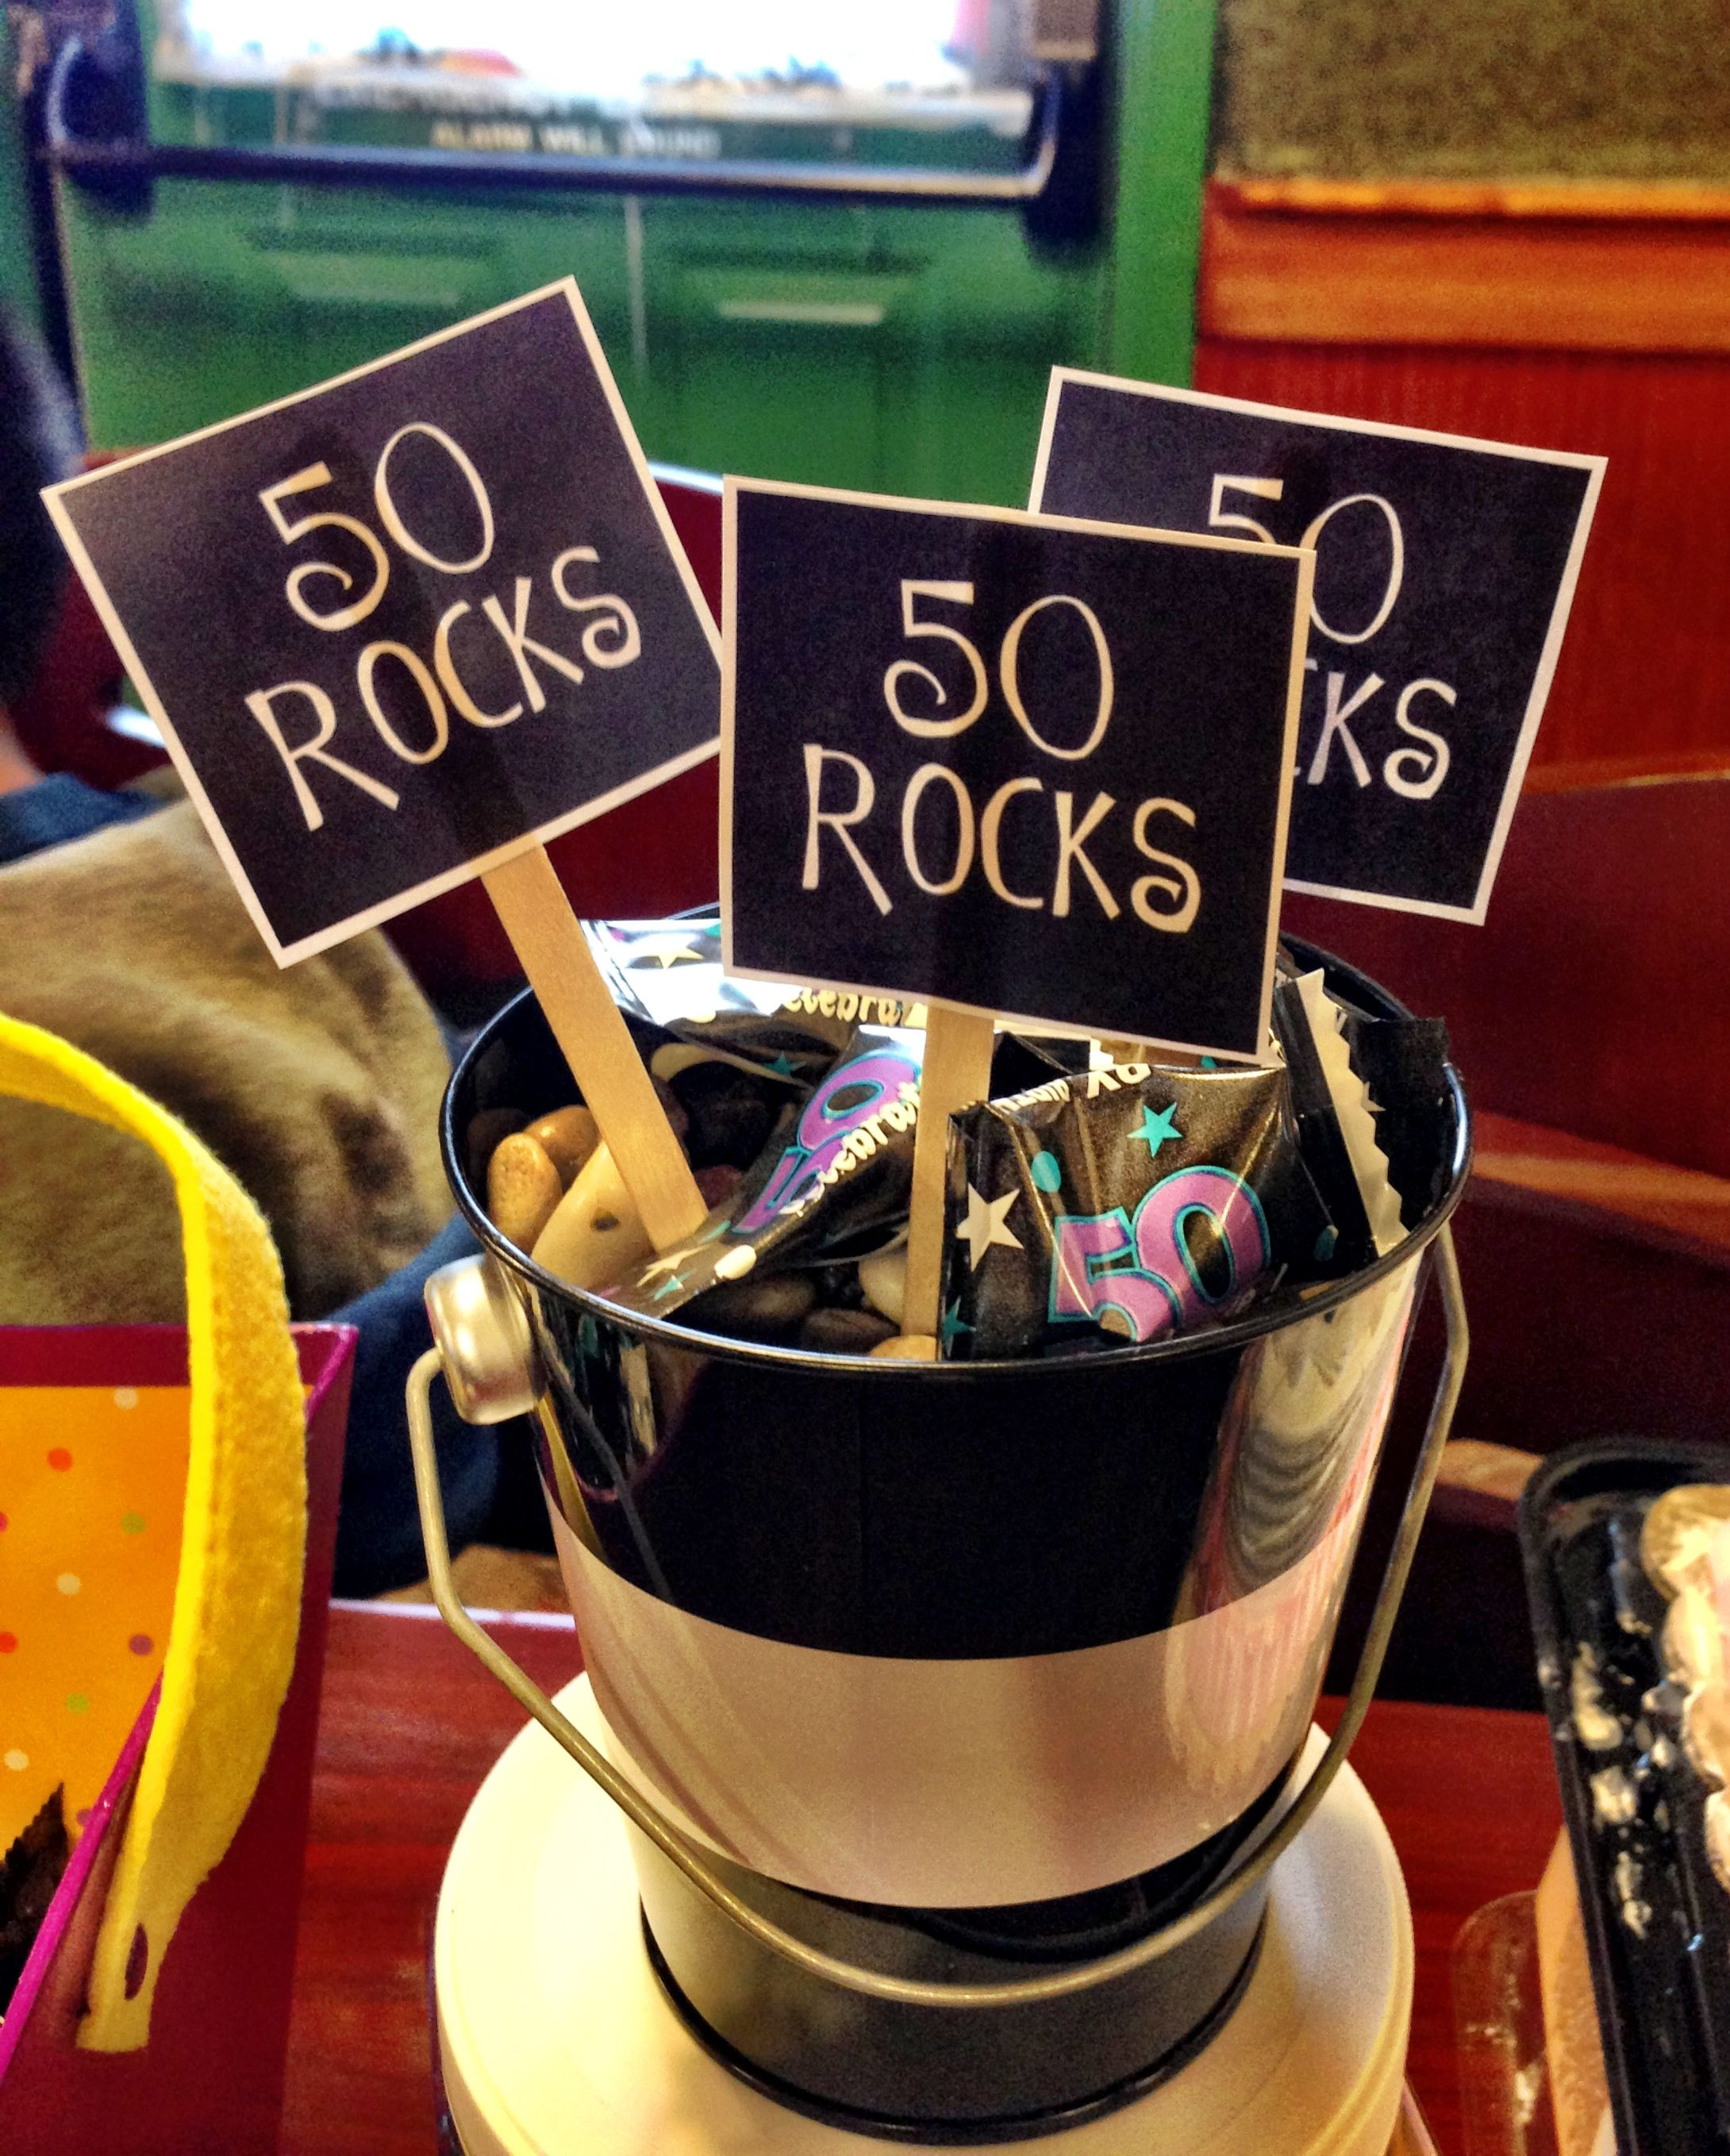 50 rocks! birthday present ideas for 50 year old! #craftyideas